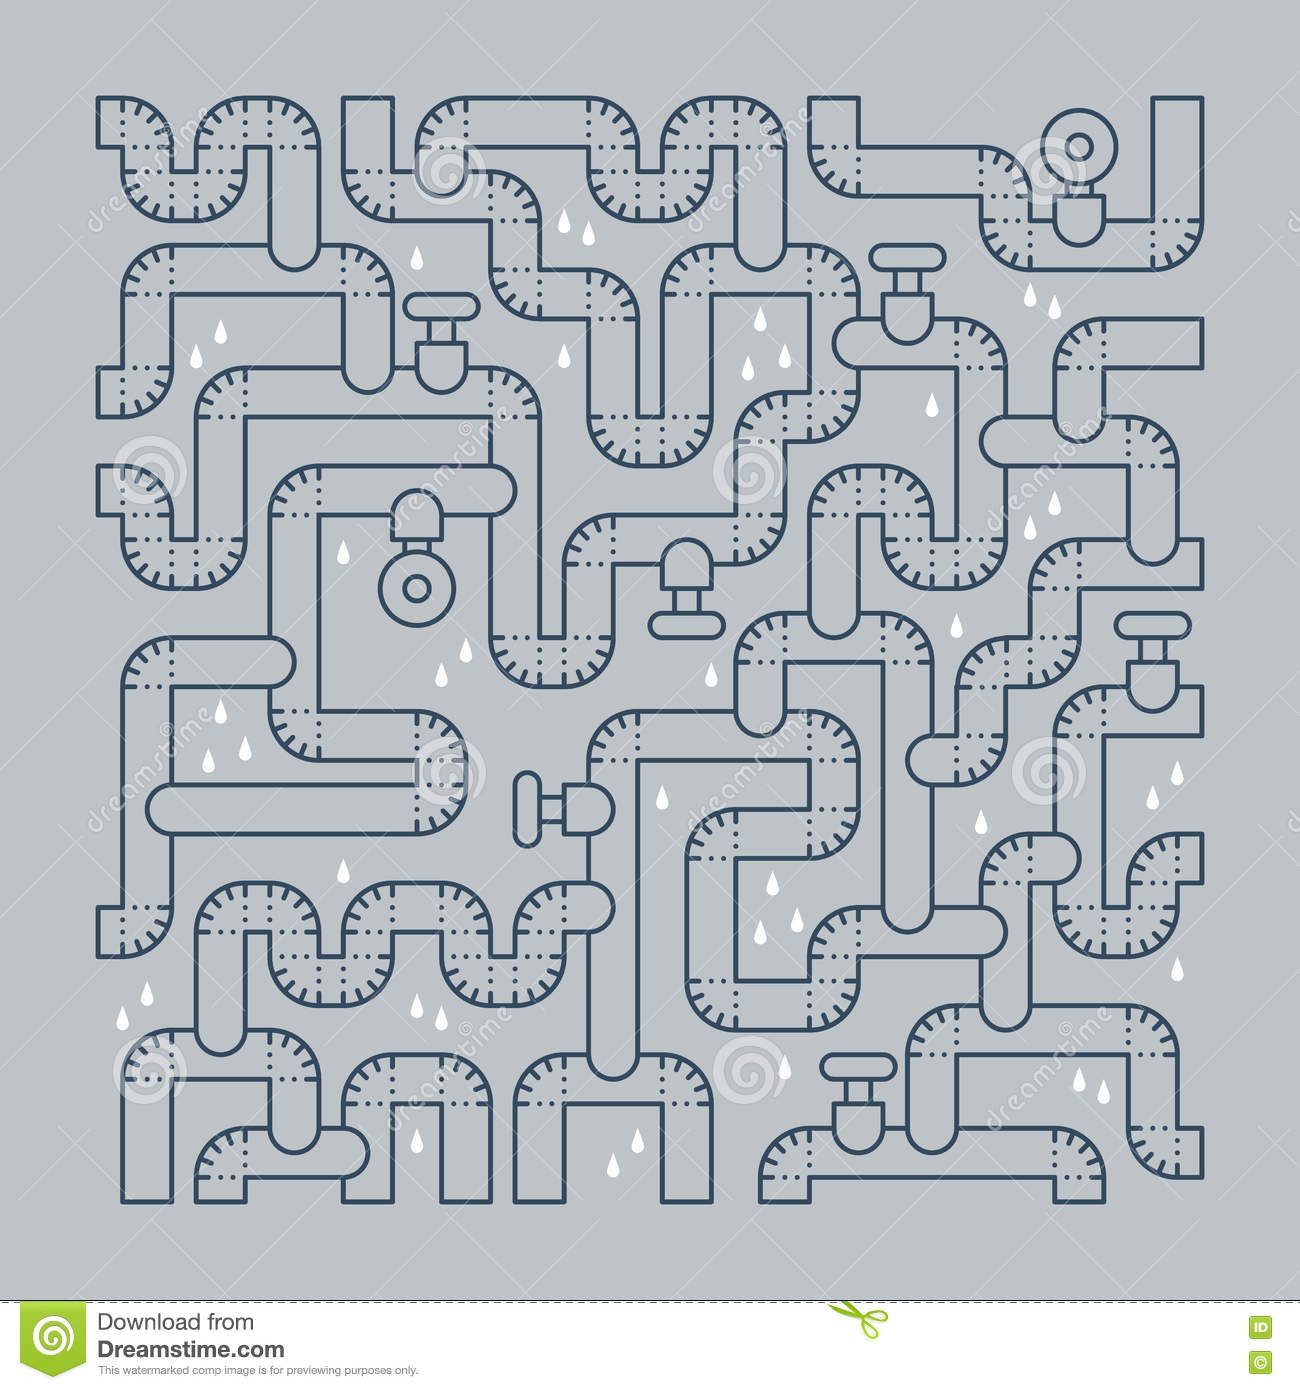 Plumbing Services Concept Backdrop Stock Photo - Image of drain ...